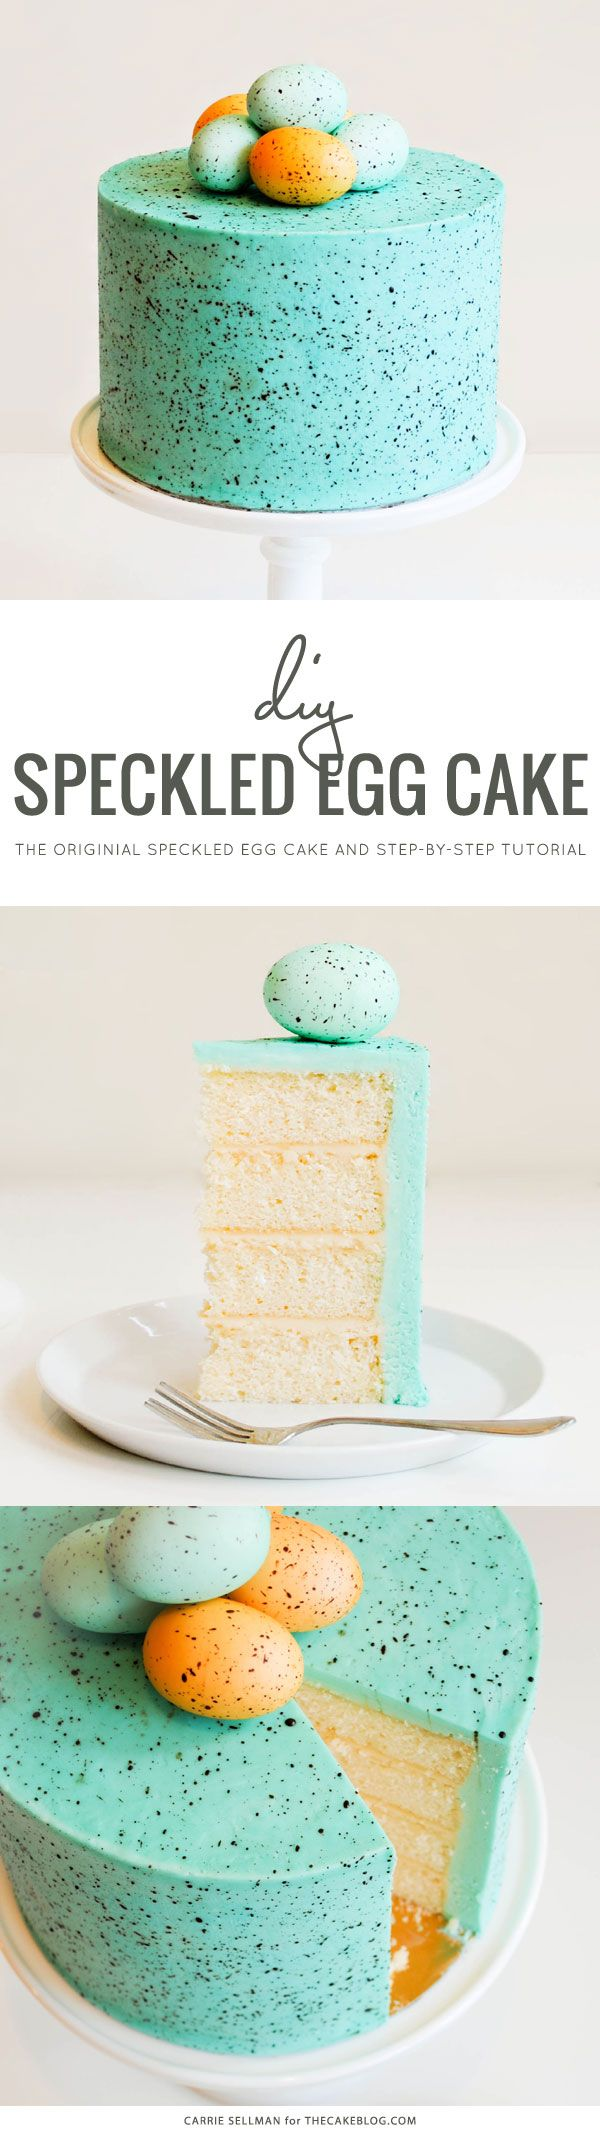 The original Speckled Egg Cake! Learn how to make a Speckled Egg Cake, perfect for your Spring and Easter celebrations. Robin's egg blue with chocolate brown speckles. A DIY cake tutorial by Carrie Sellman.